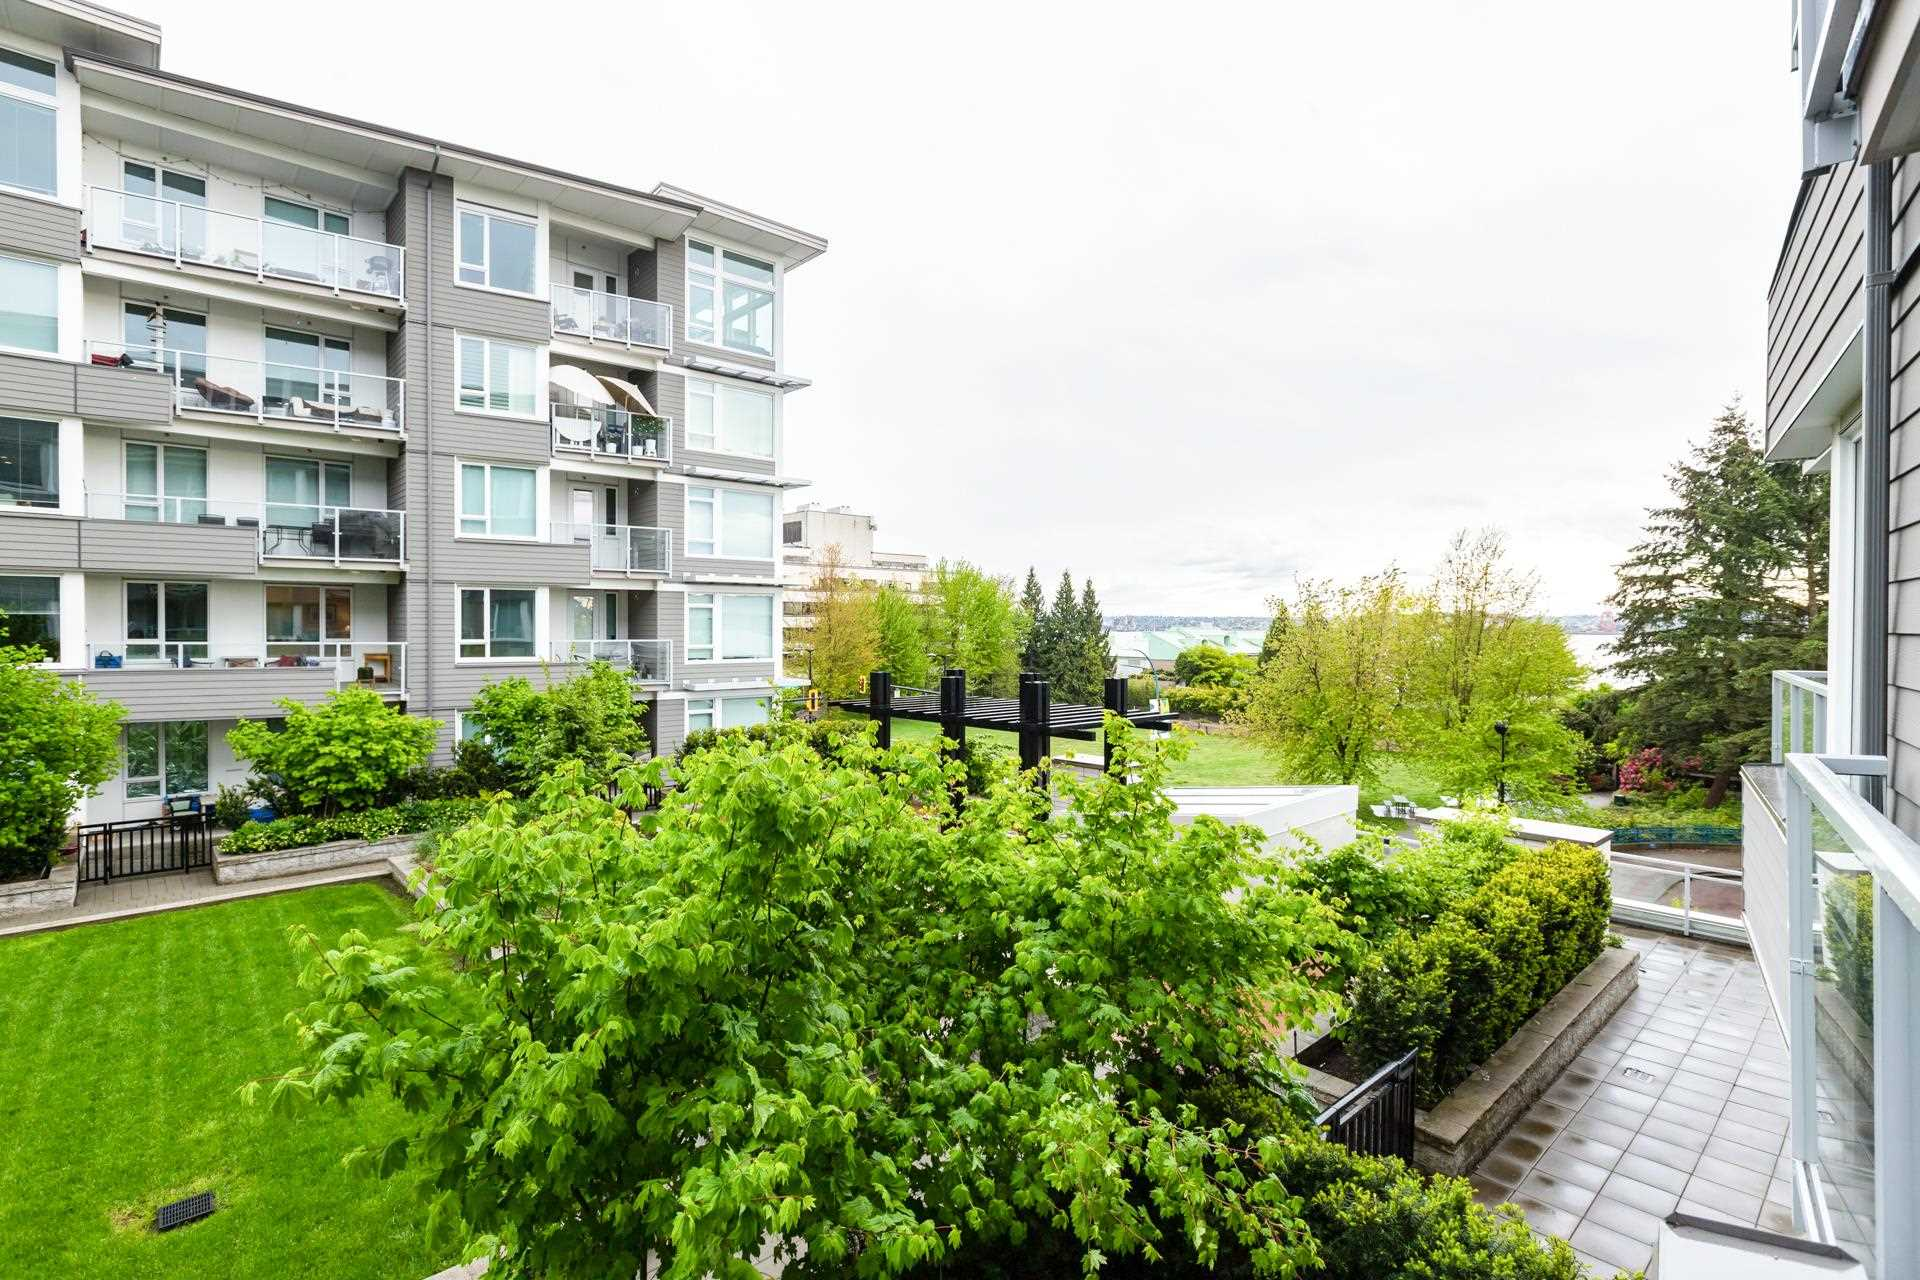 207 255 W 1ST STREET - Lower Lonsdale Apartment/Condo for sale, 2 Bedrooms (R2603882) - #22